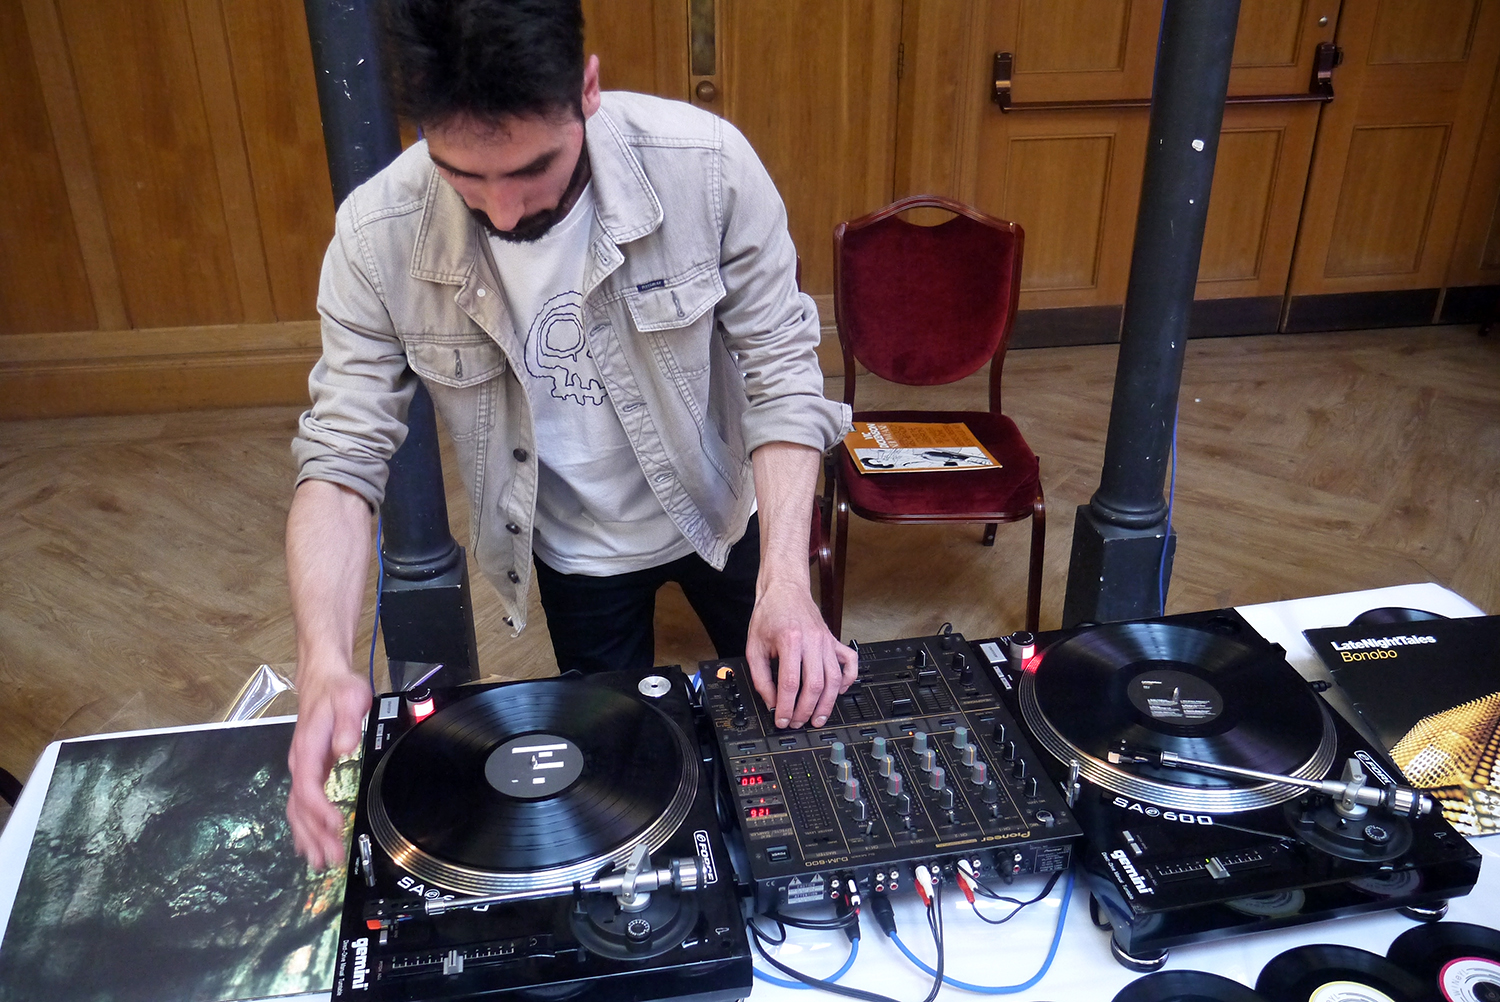 Sommelier and DJ Stefano Cazzato spinning some very classy vinyls.